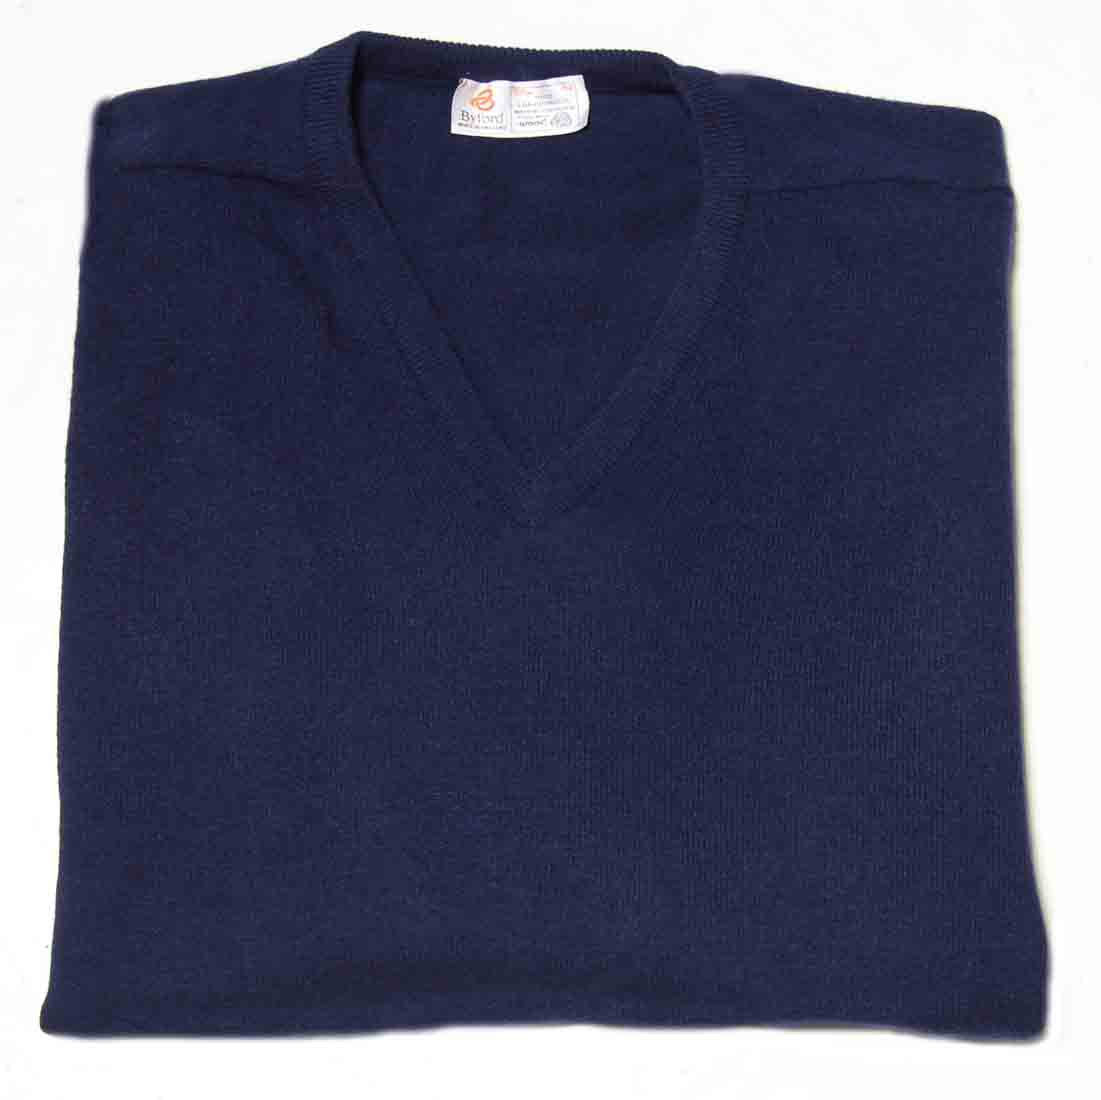 Vintage Byford Lambswool Sweater Navy Blue V-Neck Made in England Men's size 42 or Large